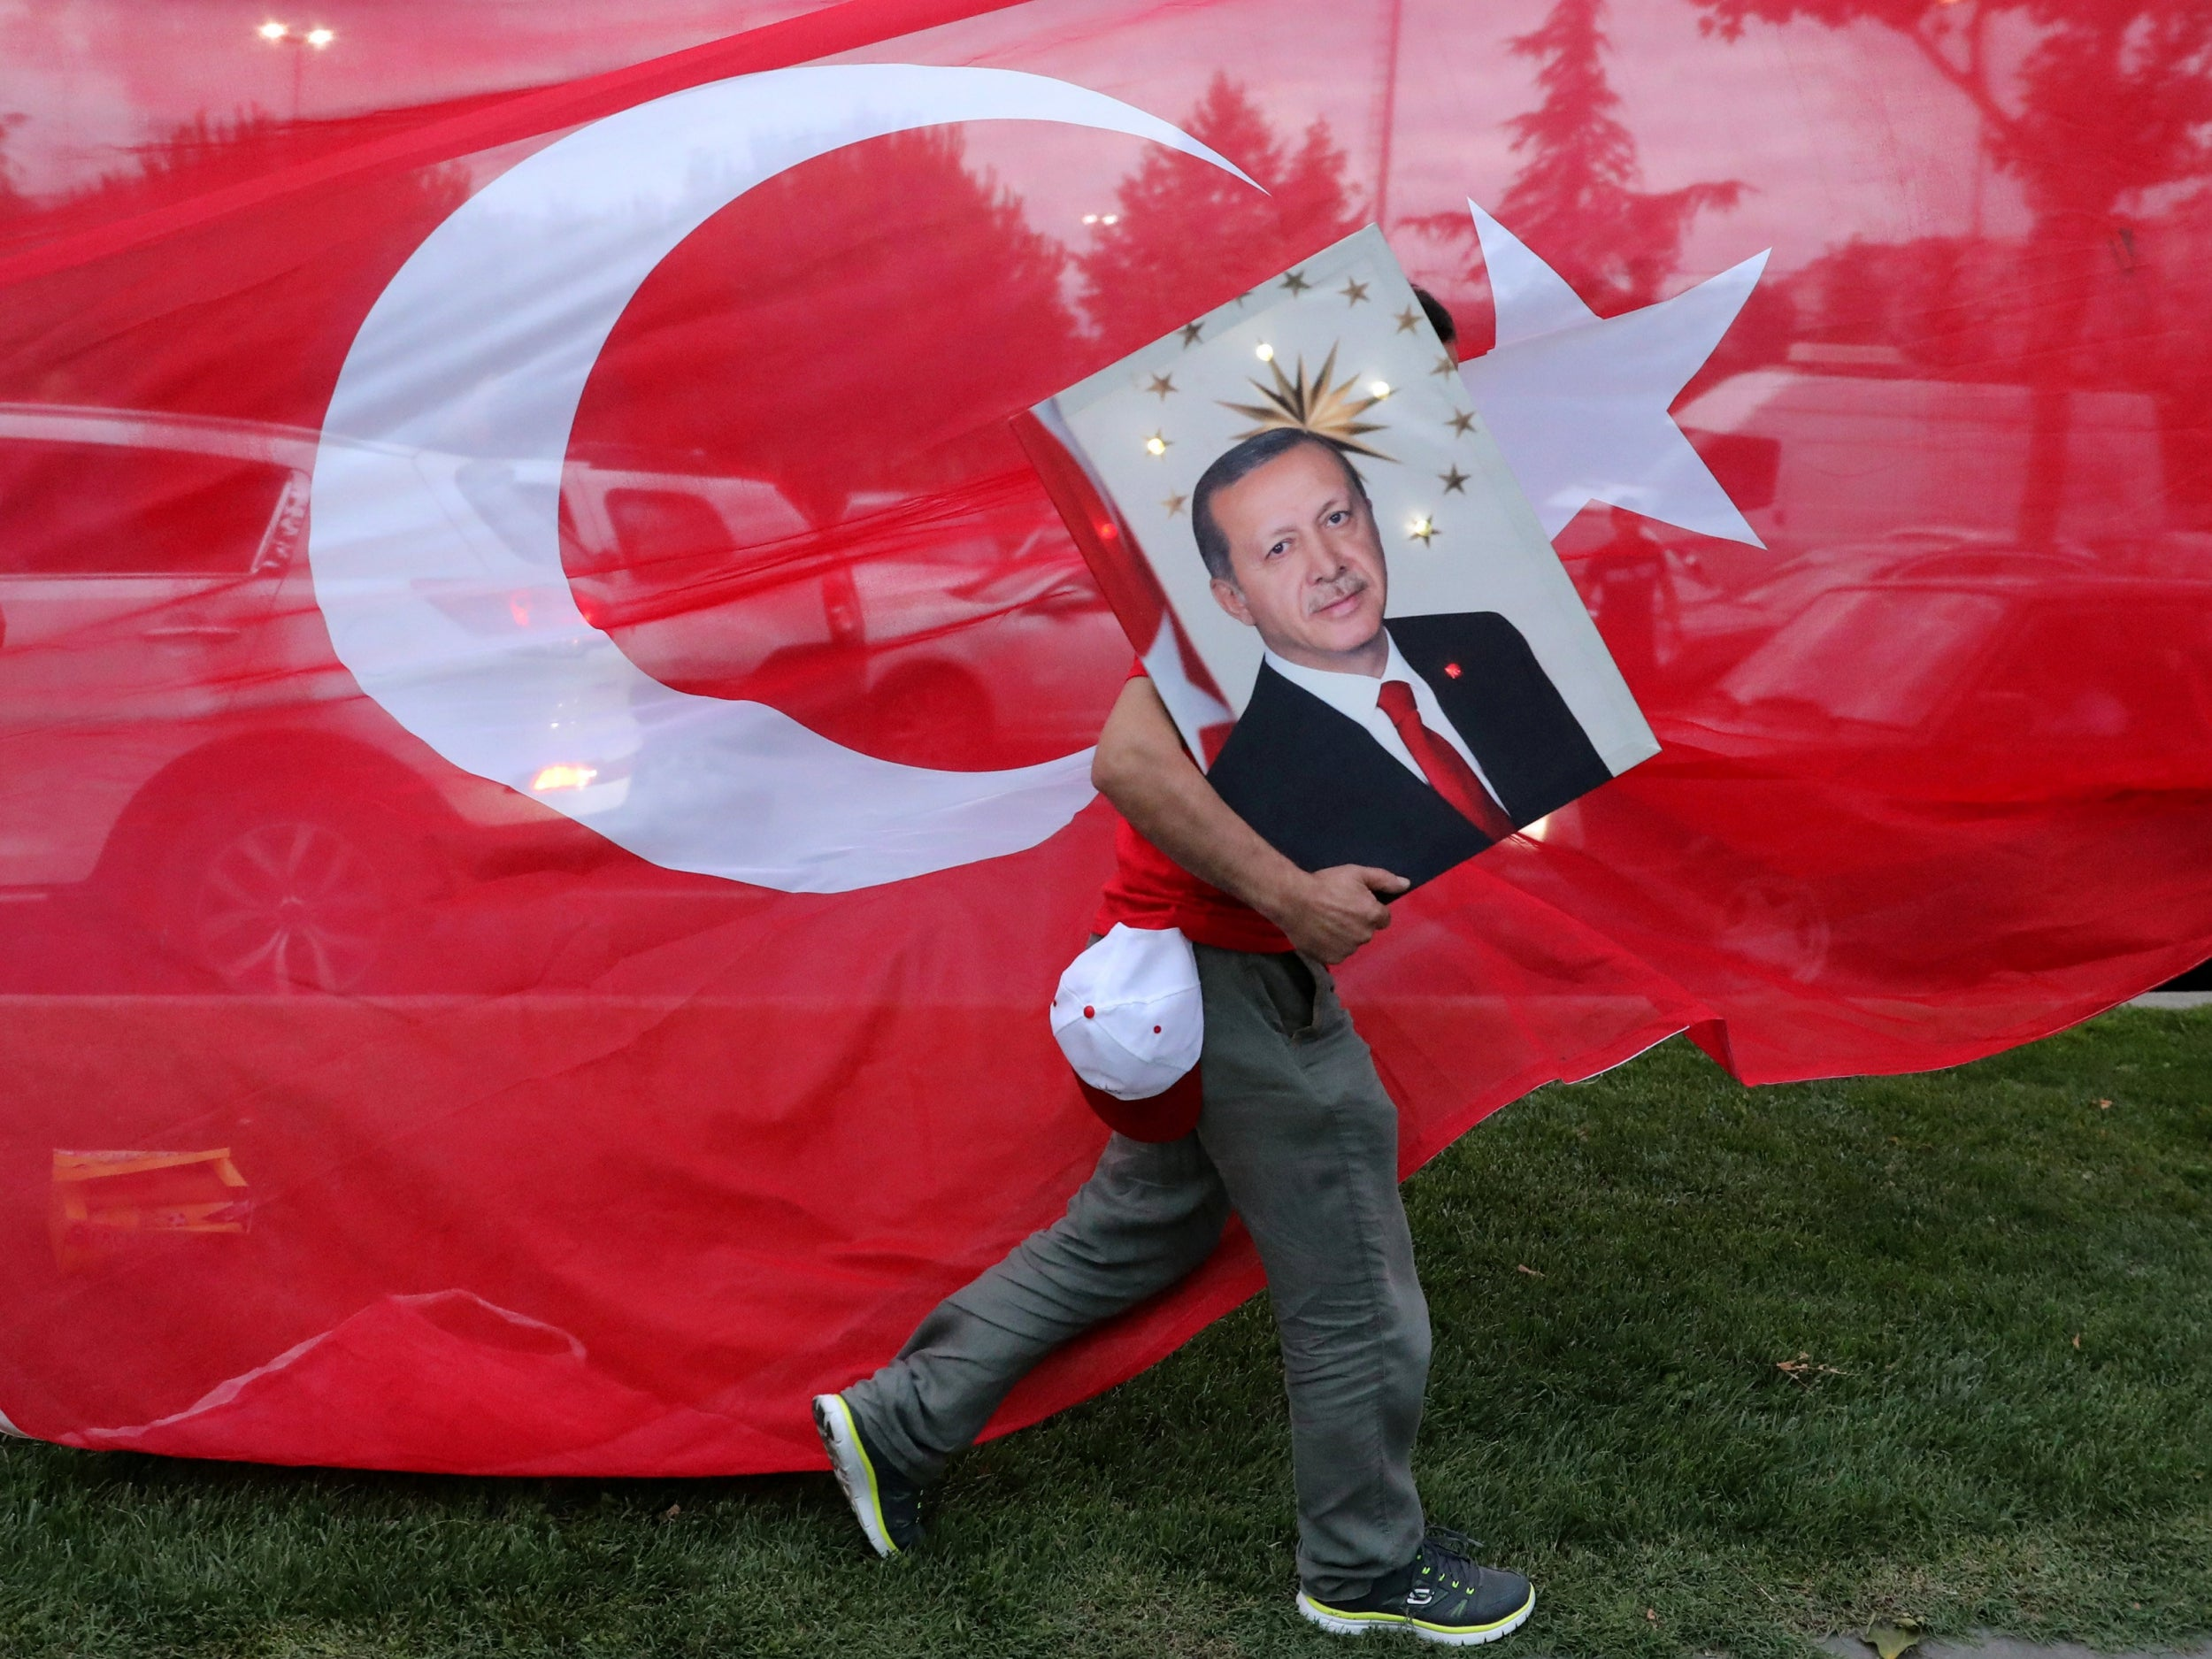 What powers will Turkey's Erdogan have at his disposal after winning re-election as president?